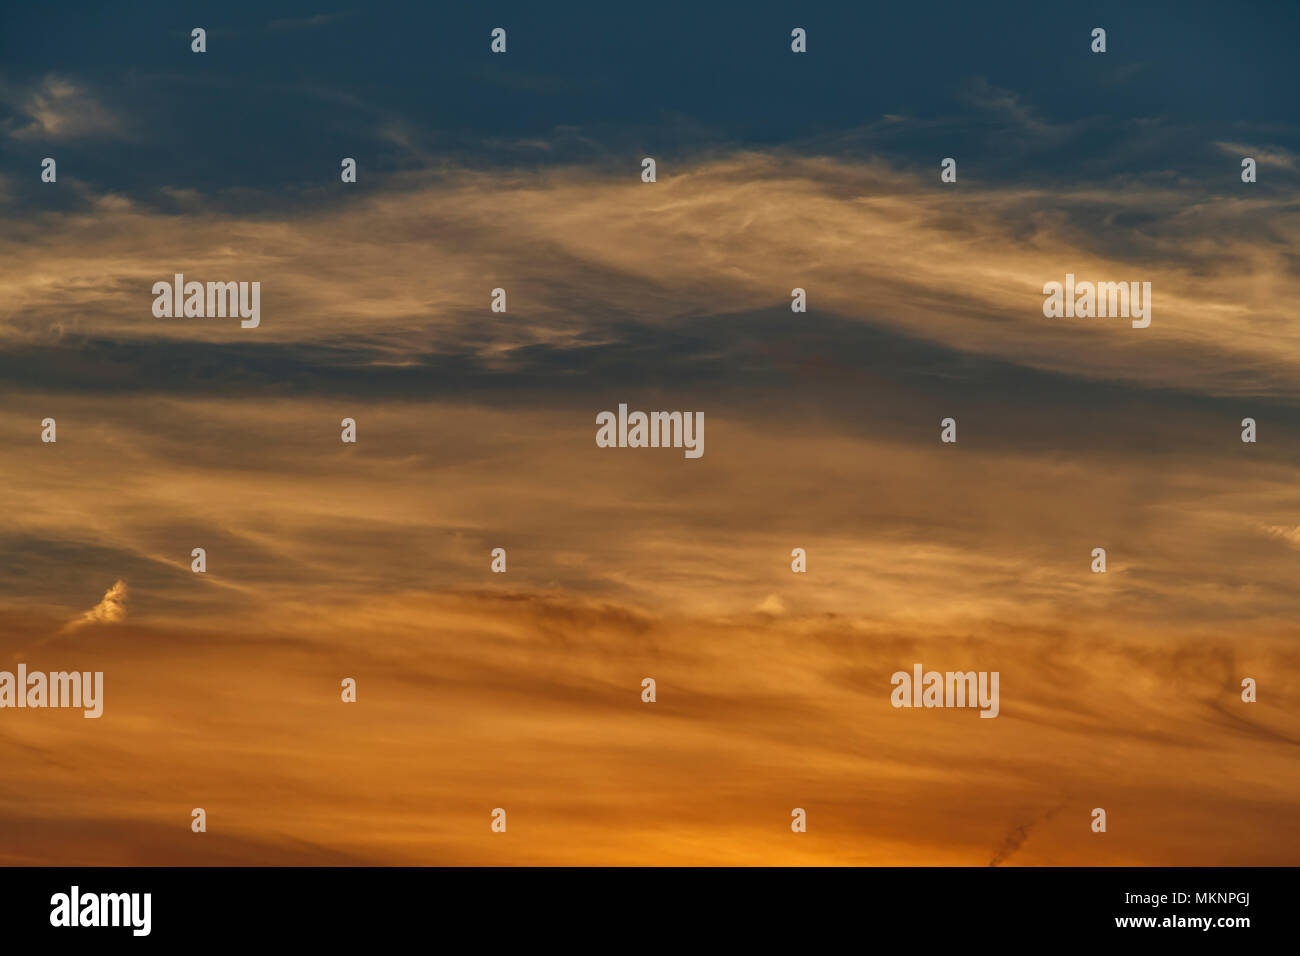 Cloud formations - Stock Image